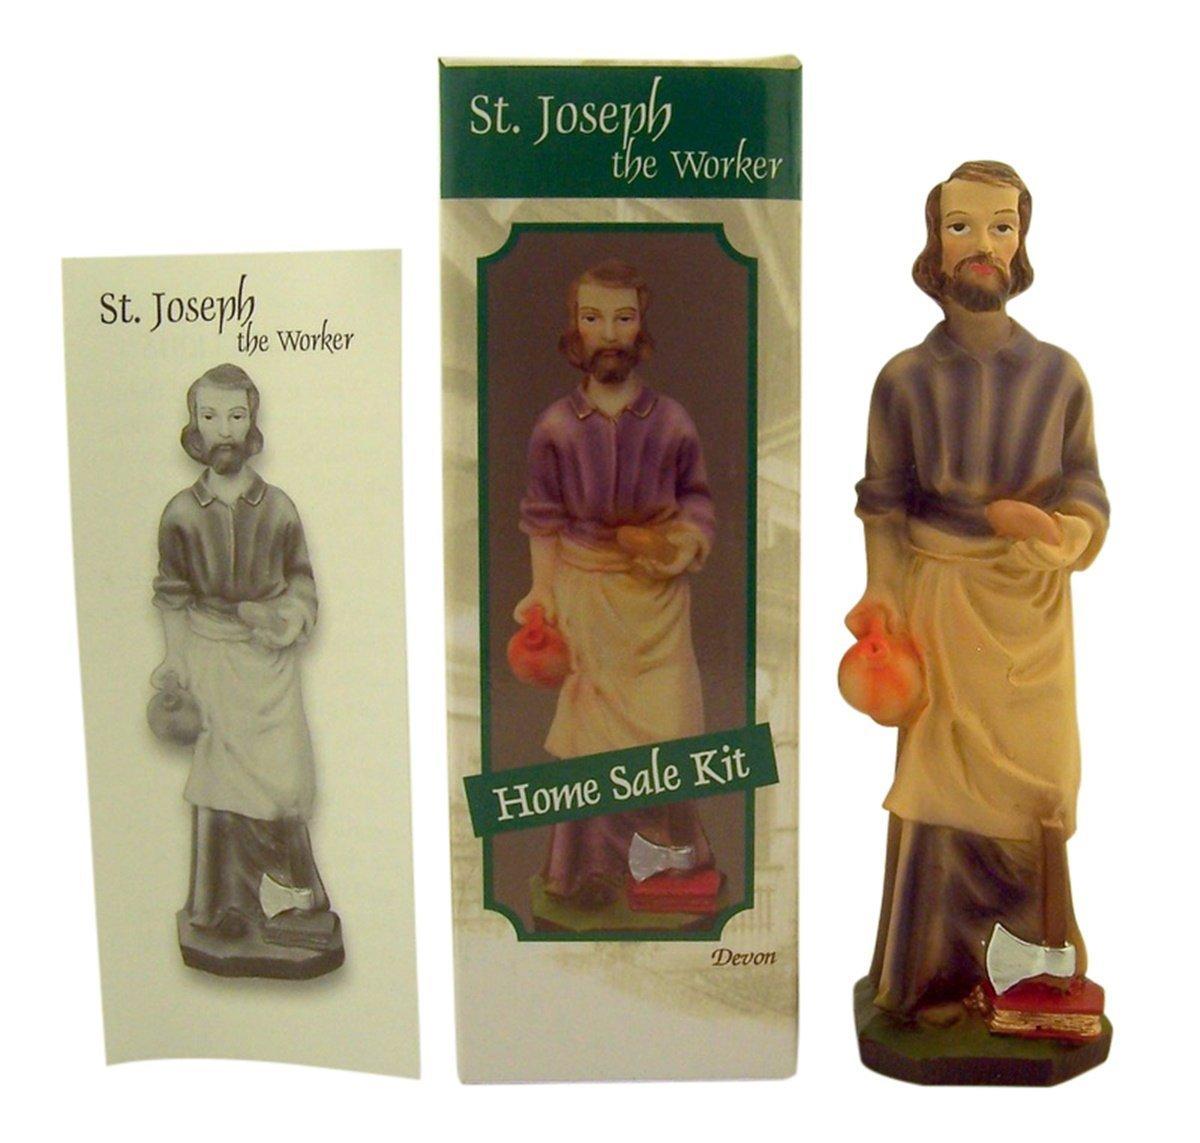 5 Inch Saint Joseph the Worker Home Sale Kit with Statue and Instructions